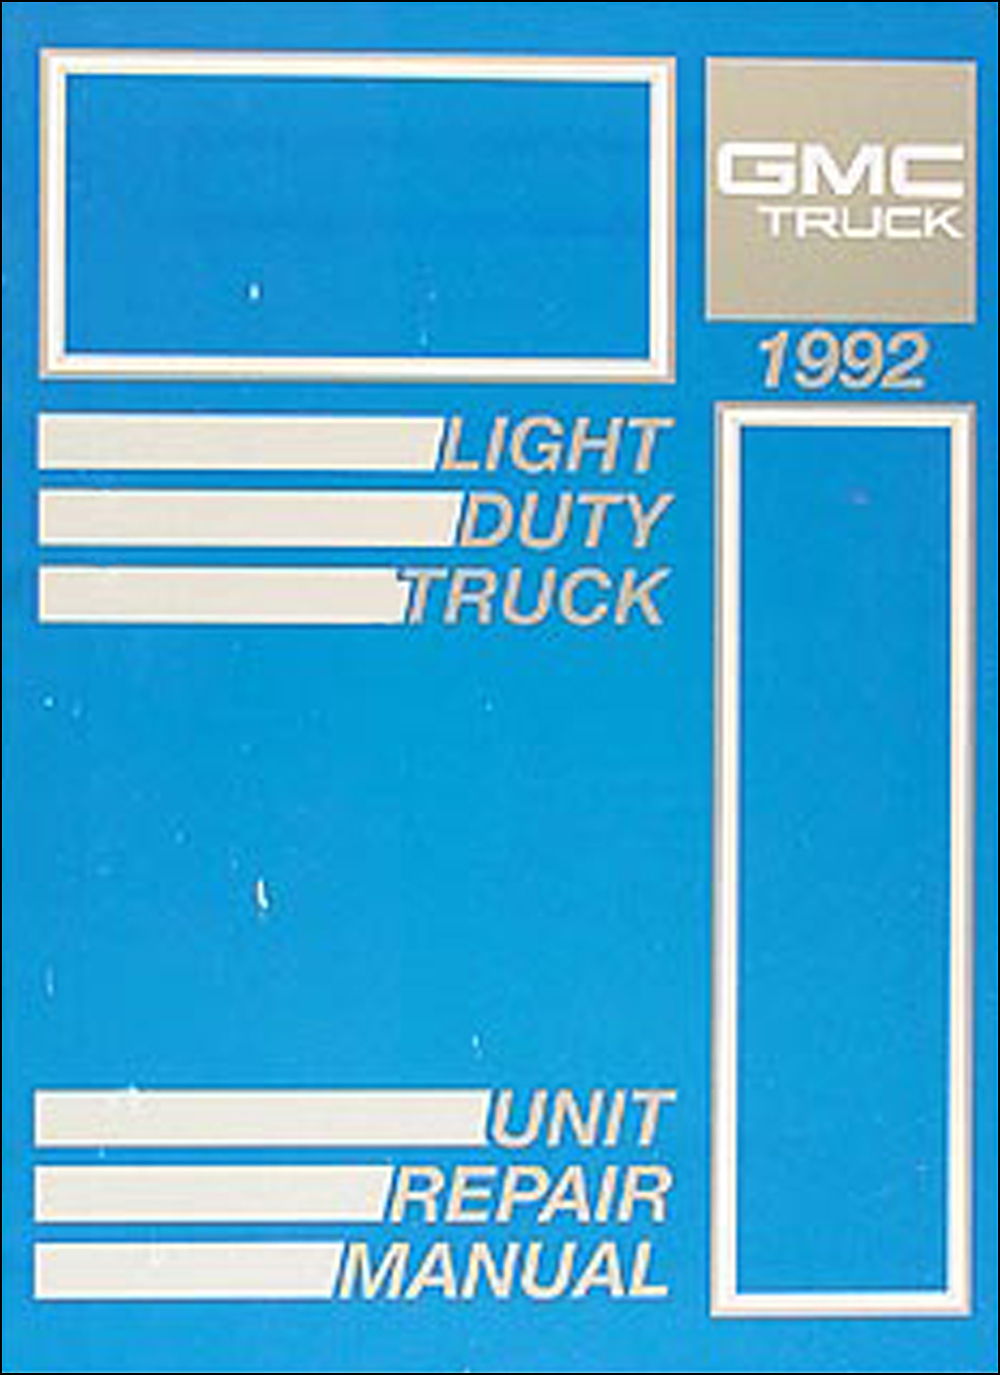 1992 GMC 1/2, 3/4, & 1 ton Truck Overhaul Manual Original